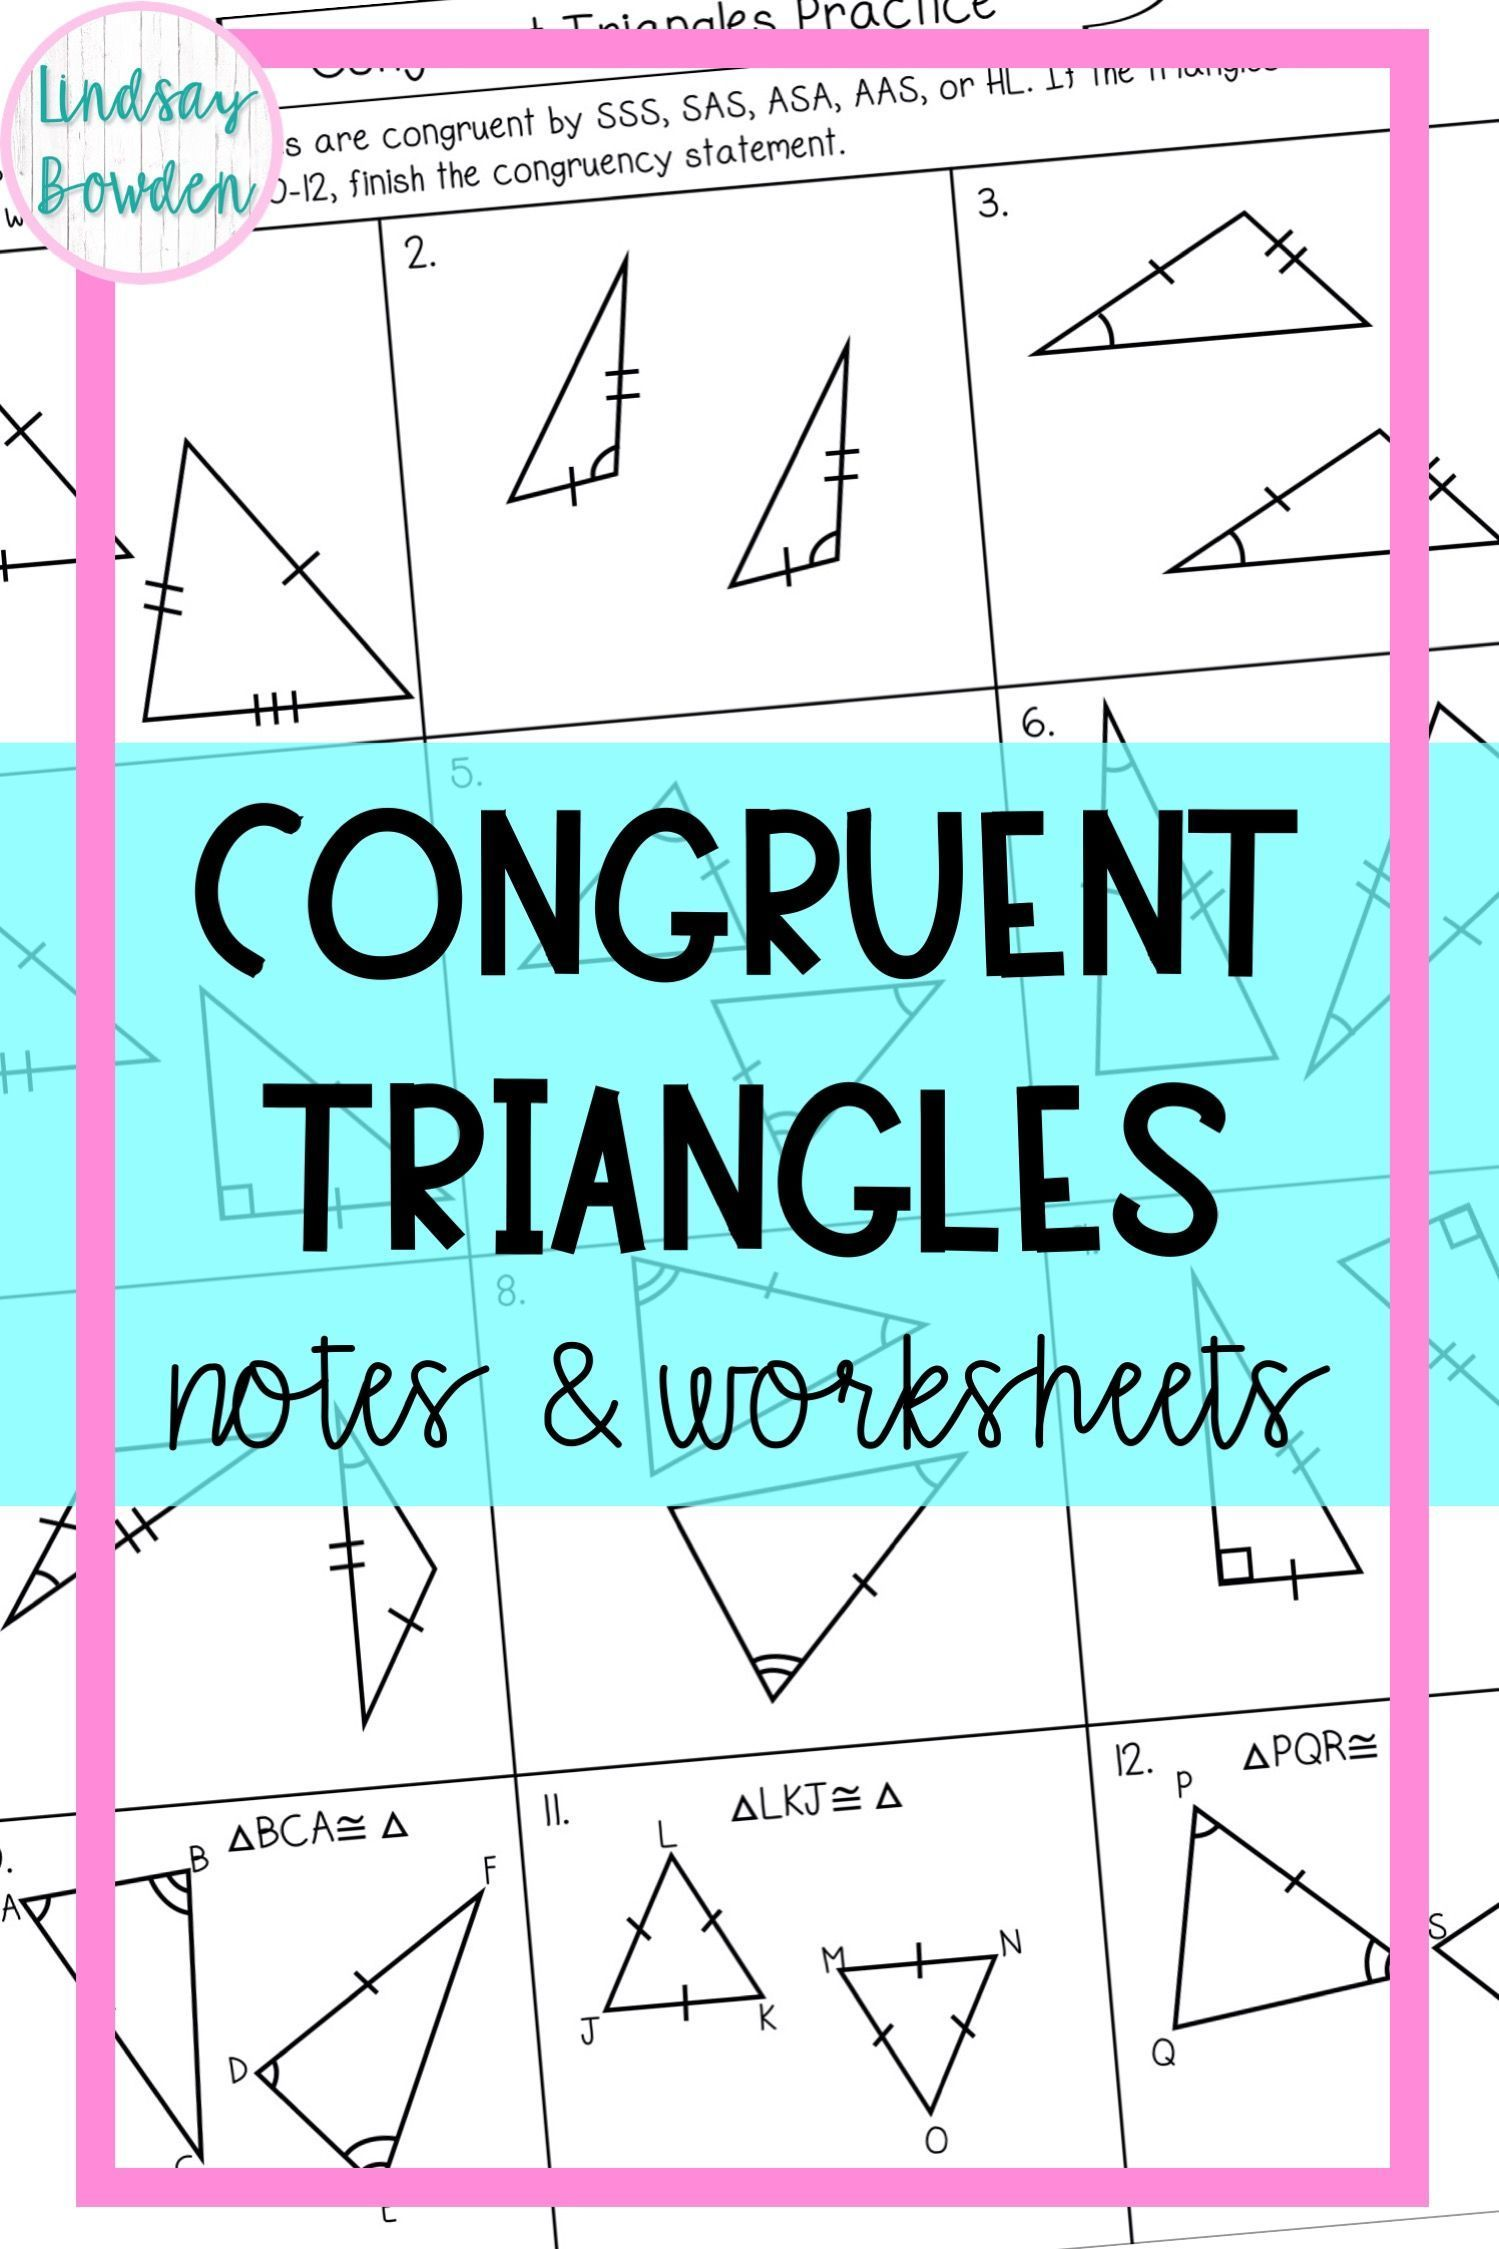 Congruent Triangles Notes And Worksheets High School Geometry Notes Free Math Lessons Geometry Lessons